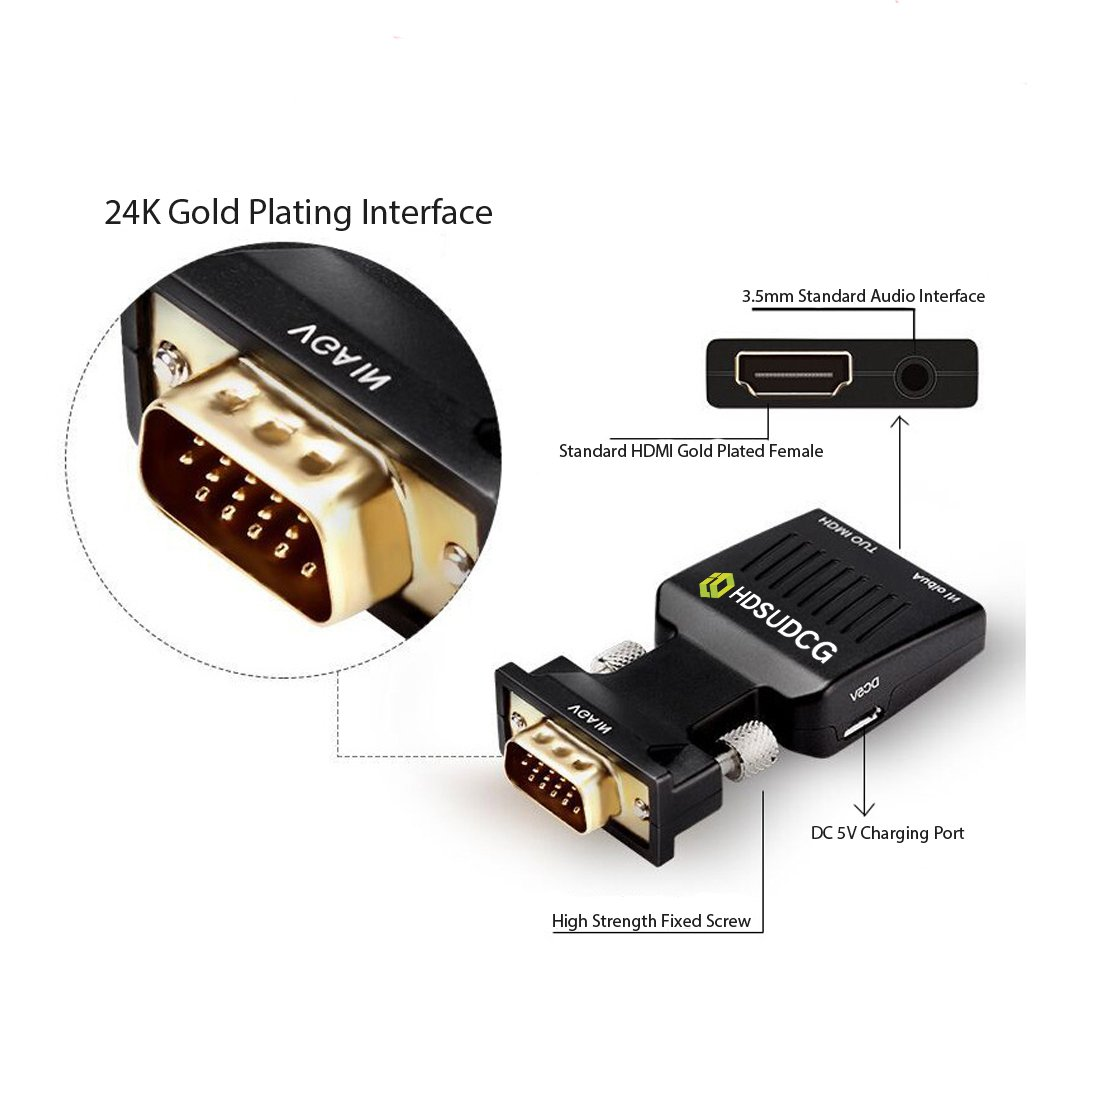 Black VGA to HDMI,1080P VGA Male to HDMI Female Adapter Converter with 3.5mm Stereo Video Audio Port to HD Converter for HDTV,PC,Laptop,Xbox PS4 PS3 TV STB VHS VCR Blu-ray Projector